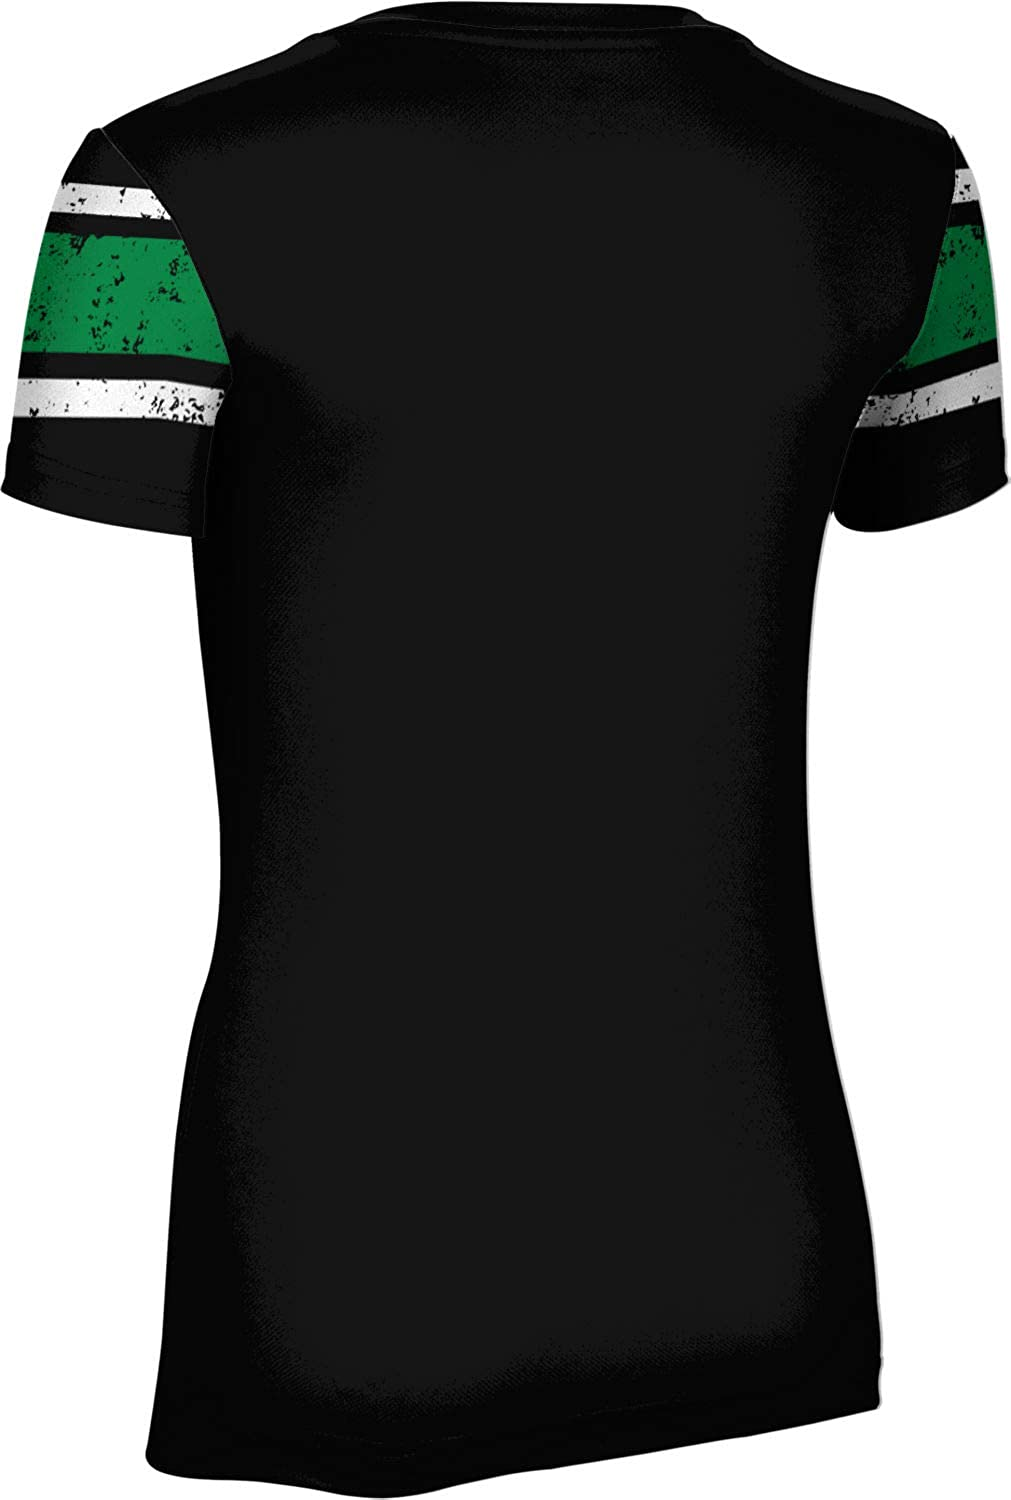 ProSphere University of North Texas Girls' Performance T-Shirt (End Zone)